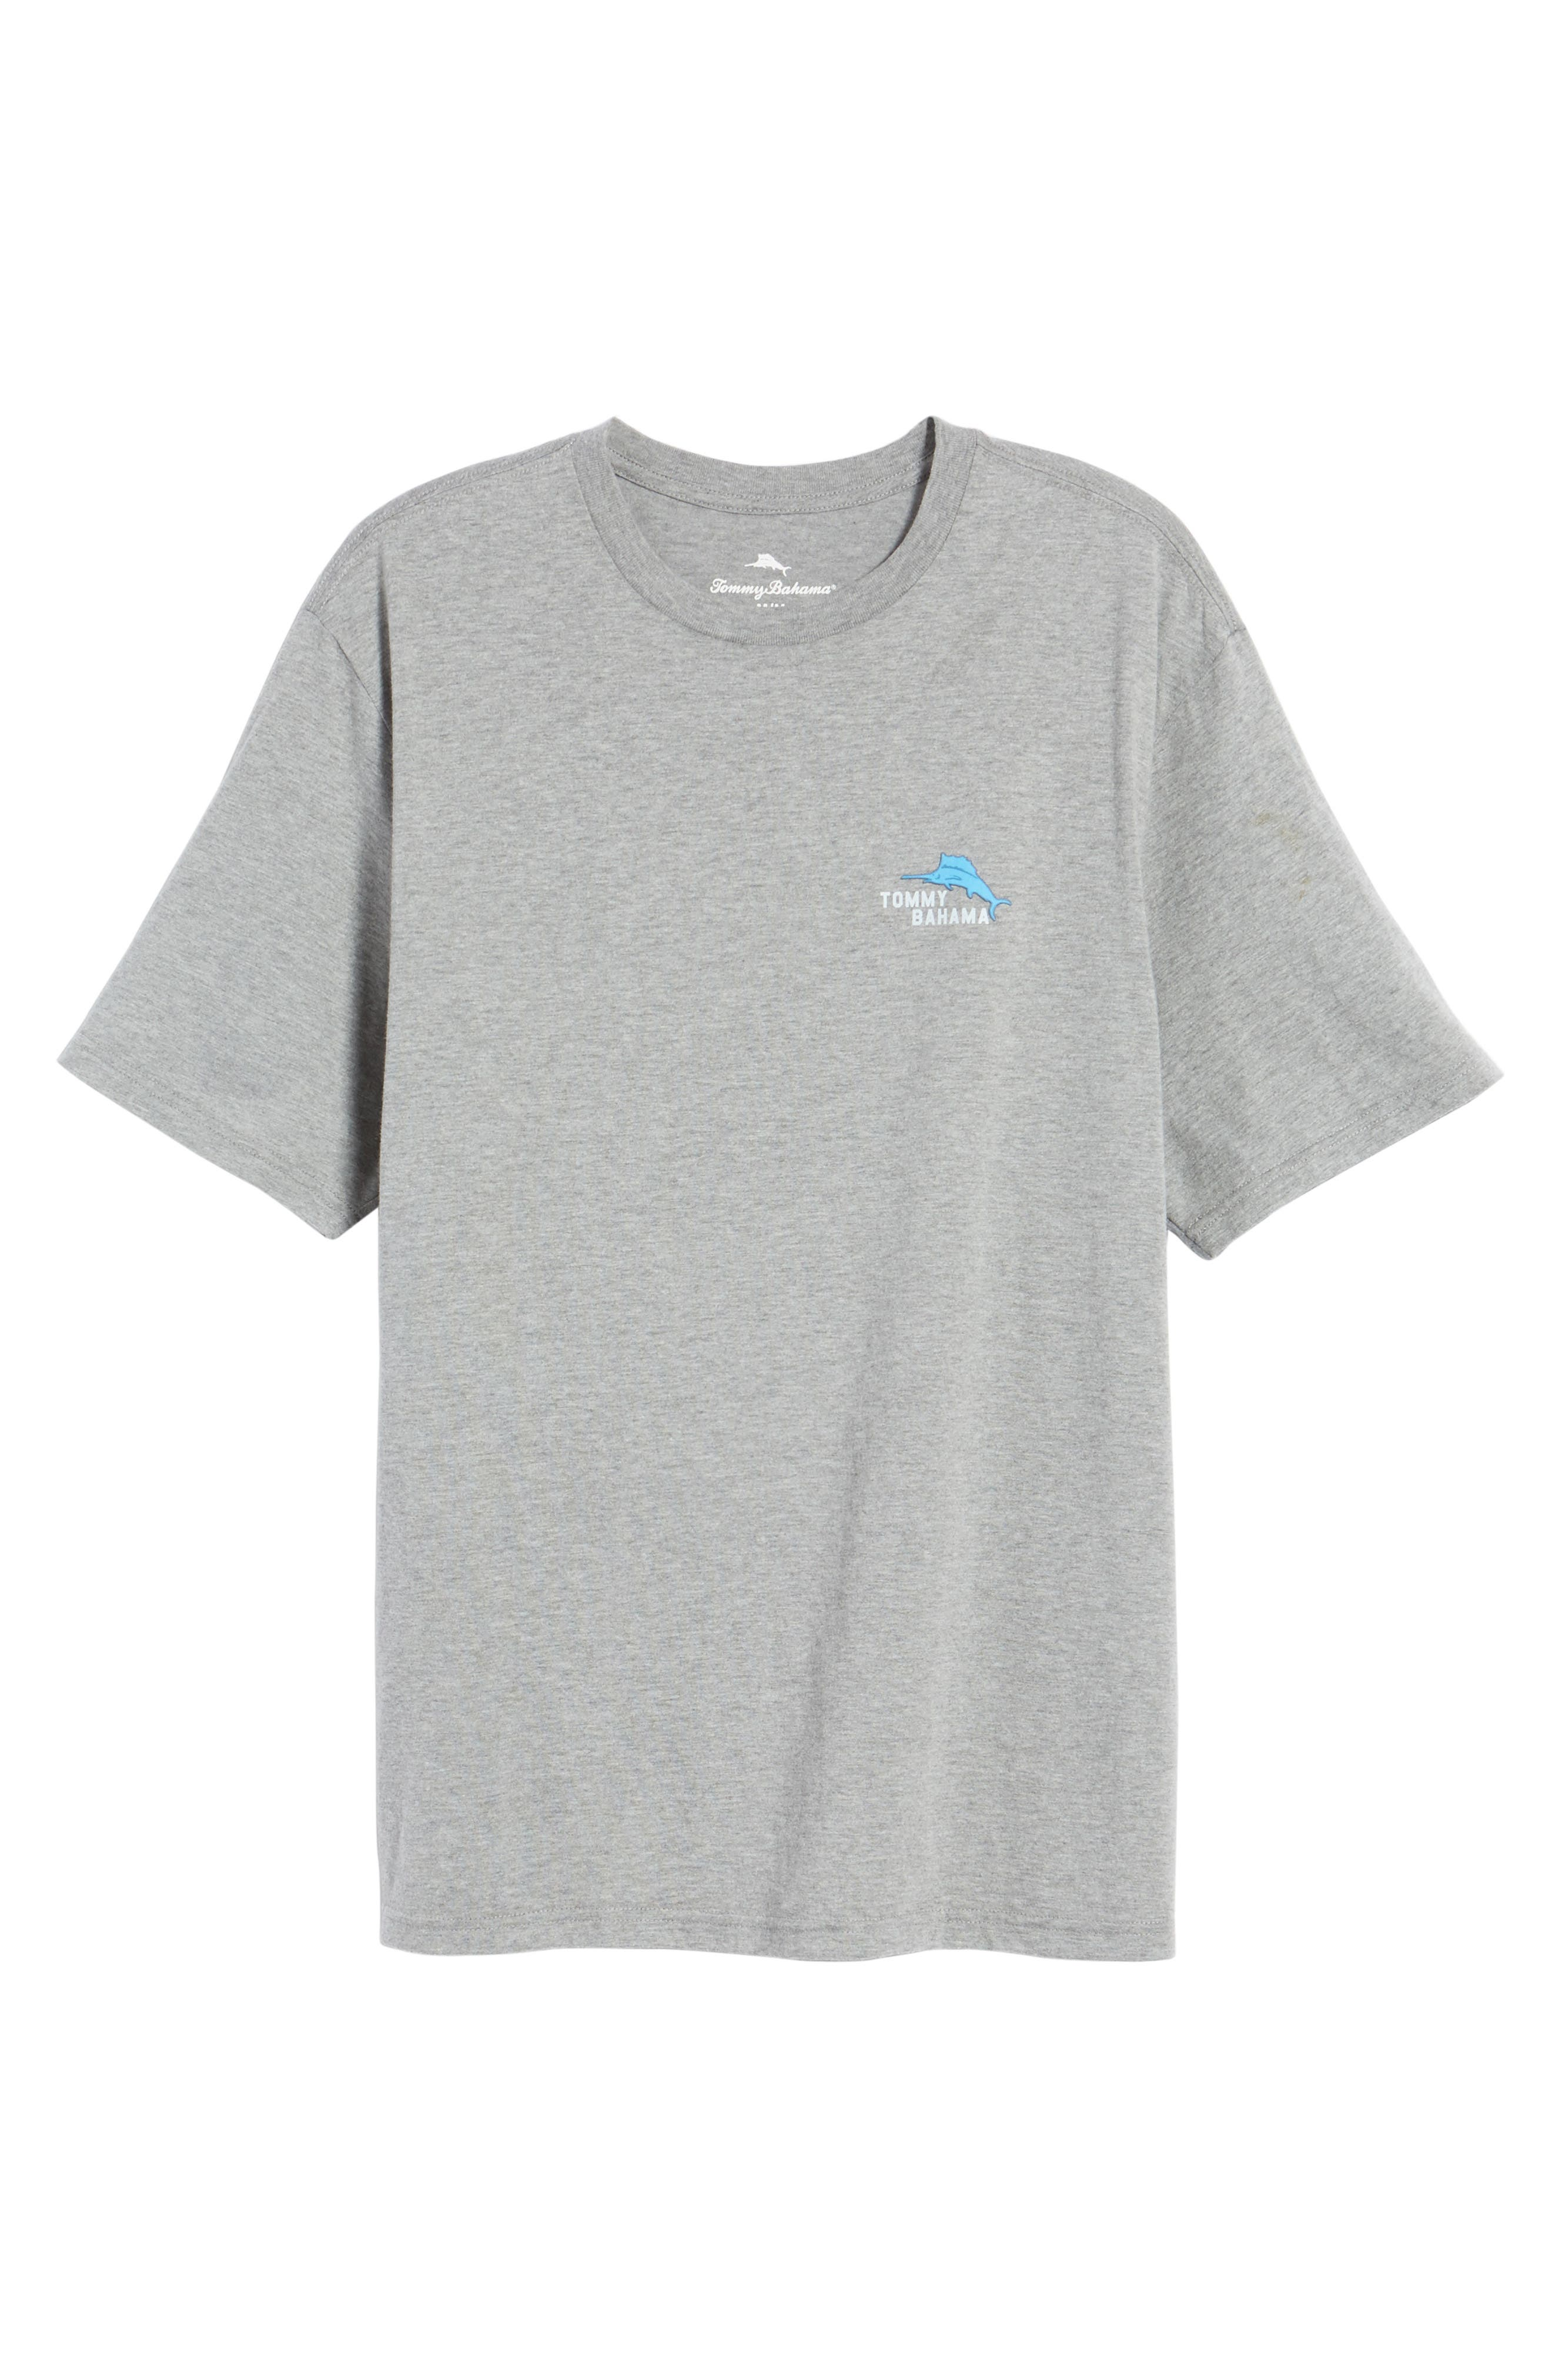 Yer Out T-Shirt,                             Alternate thumbnail 6, color,                             020